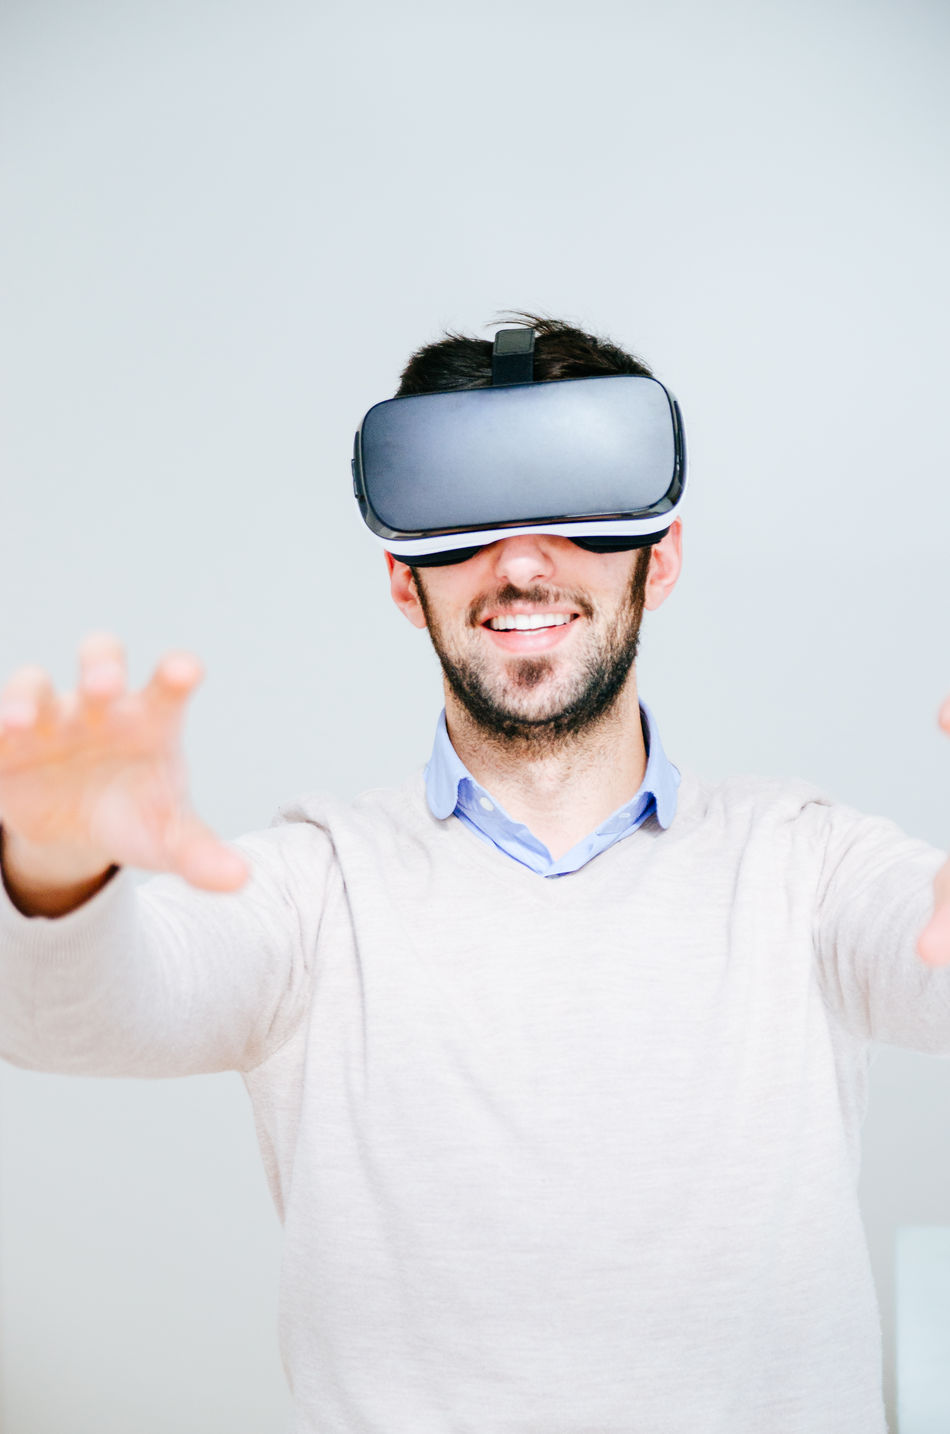 Adult Adults Only Beard Casual Clothing Cyberspace Futuristic Happiness Human Body Part Innovation Mature Adult Men One Man Only One Person Only Men People Real People Smiling Technology Virtual Reality Virtual Reality Simulator Vr Wearable Computer Wireless Technology